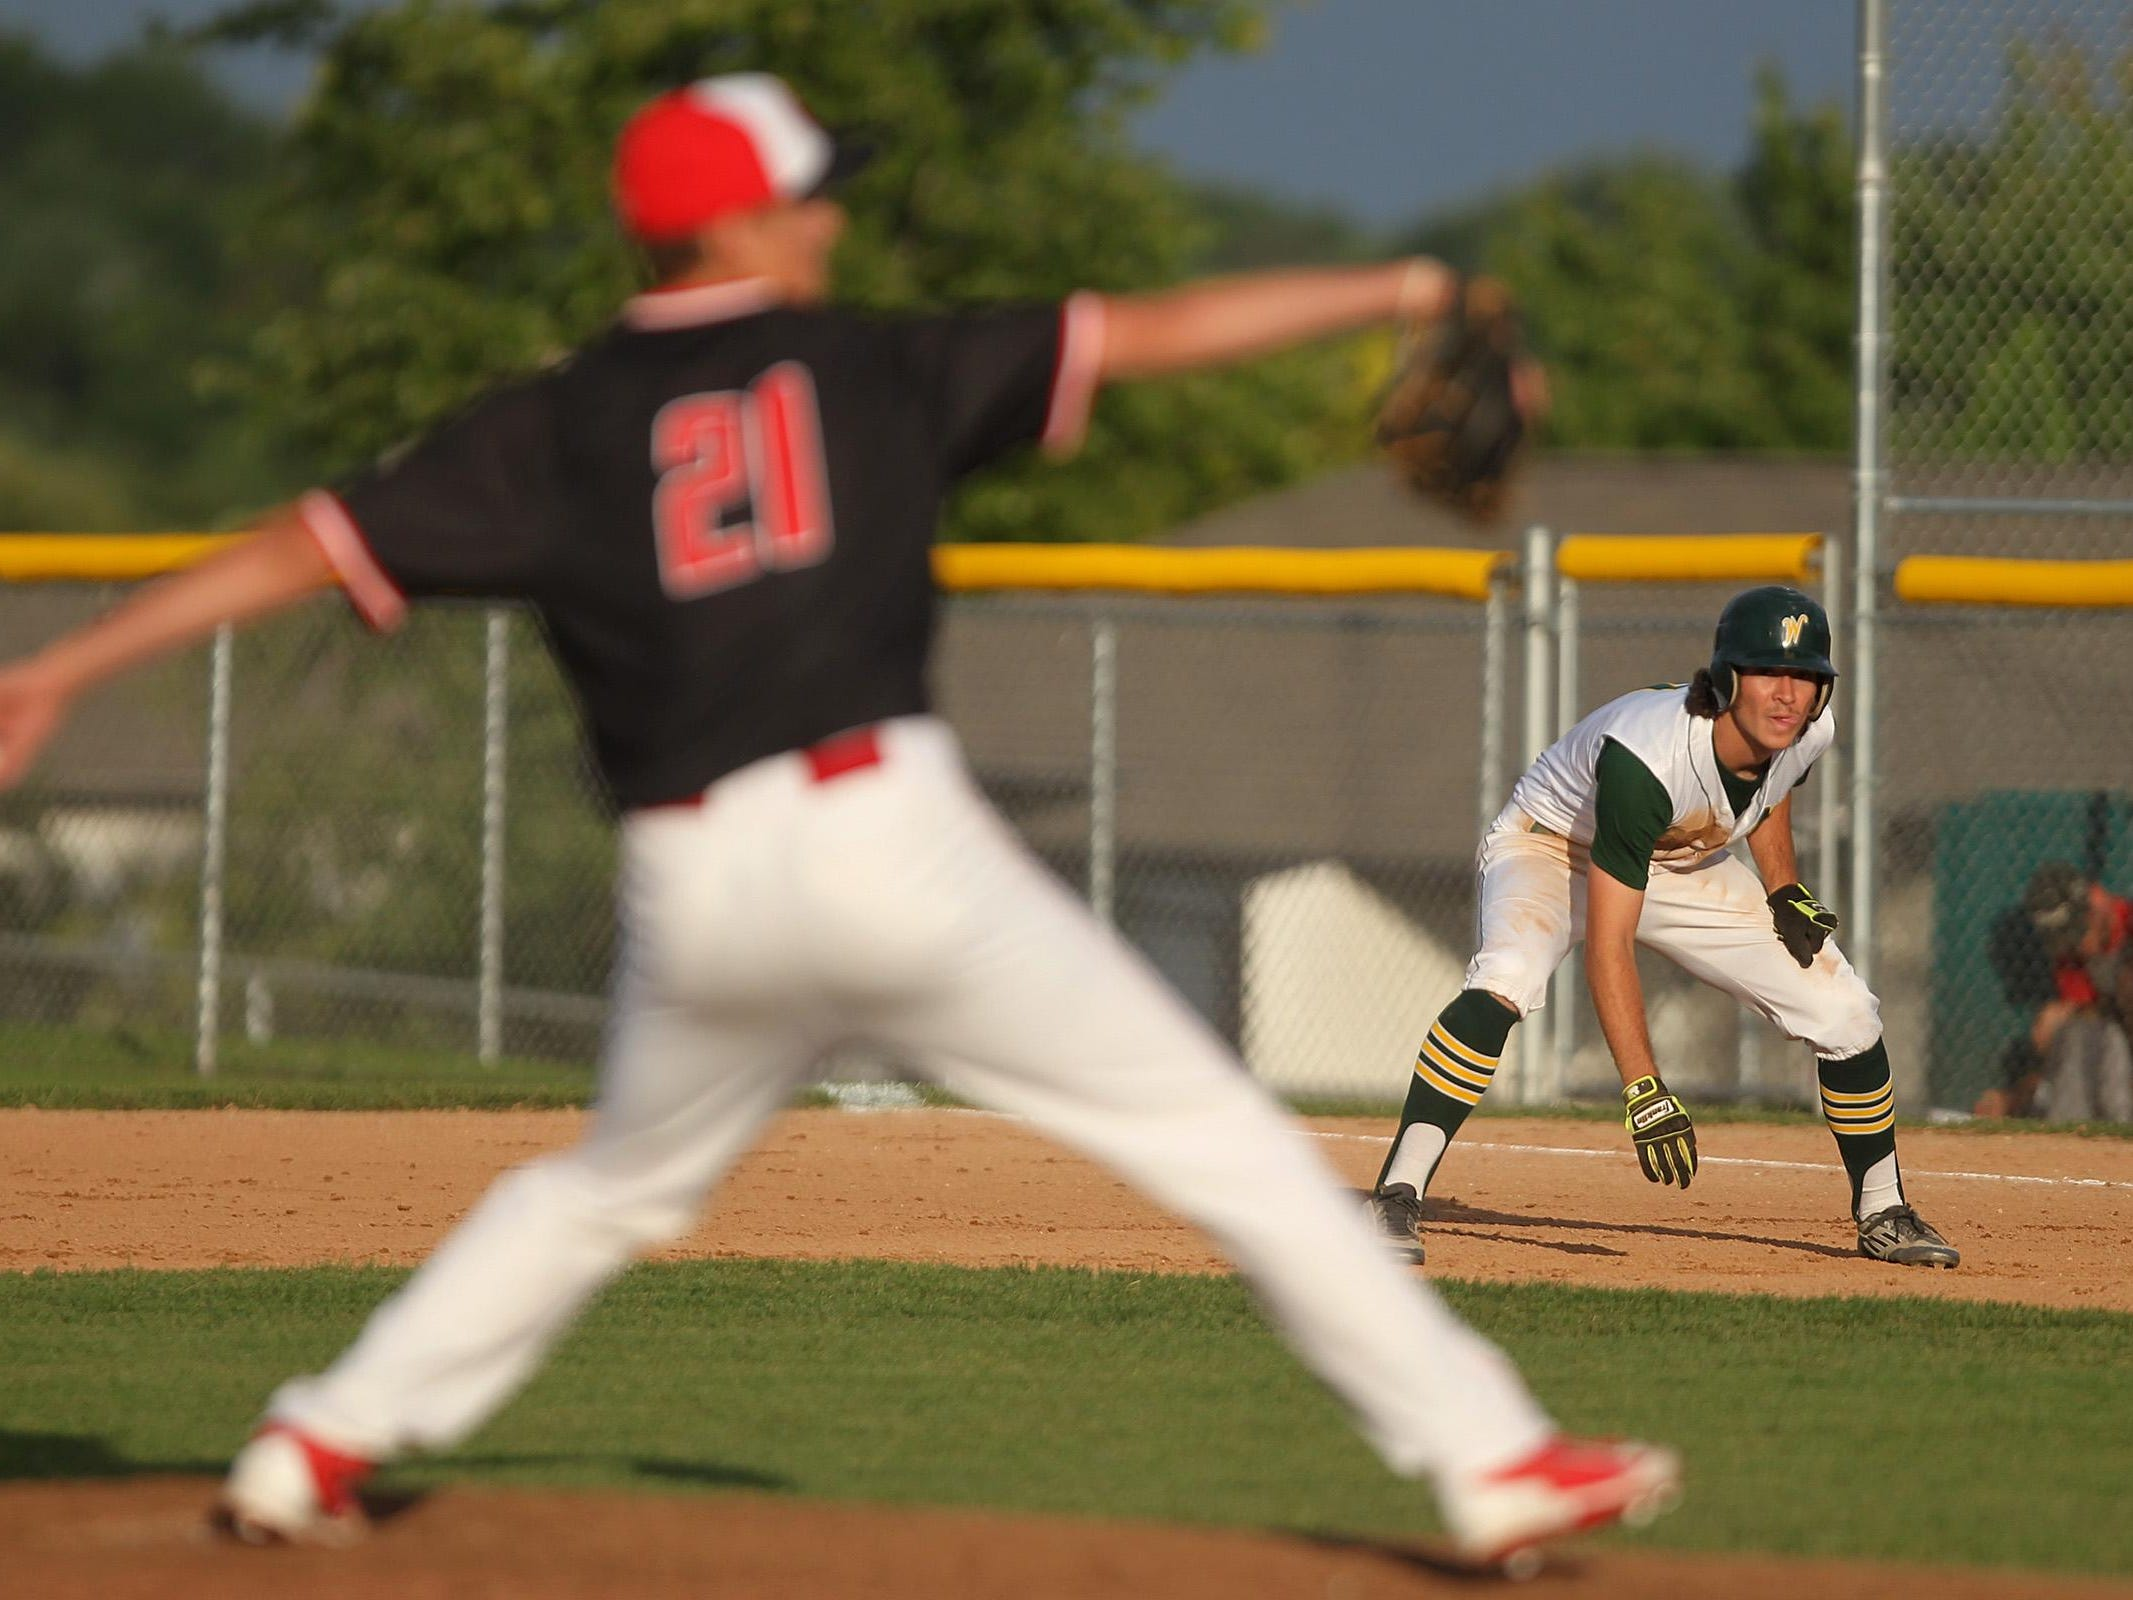 West High's Kevin DeLaney leads off first base as City High's Brady Cotton delivers a pitch on Tuesday.